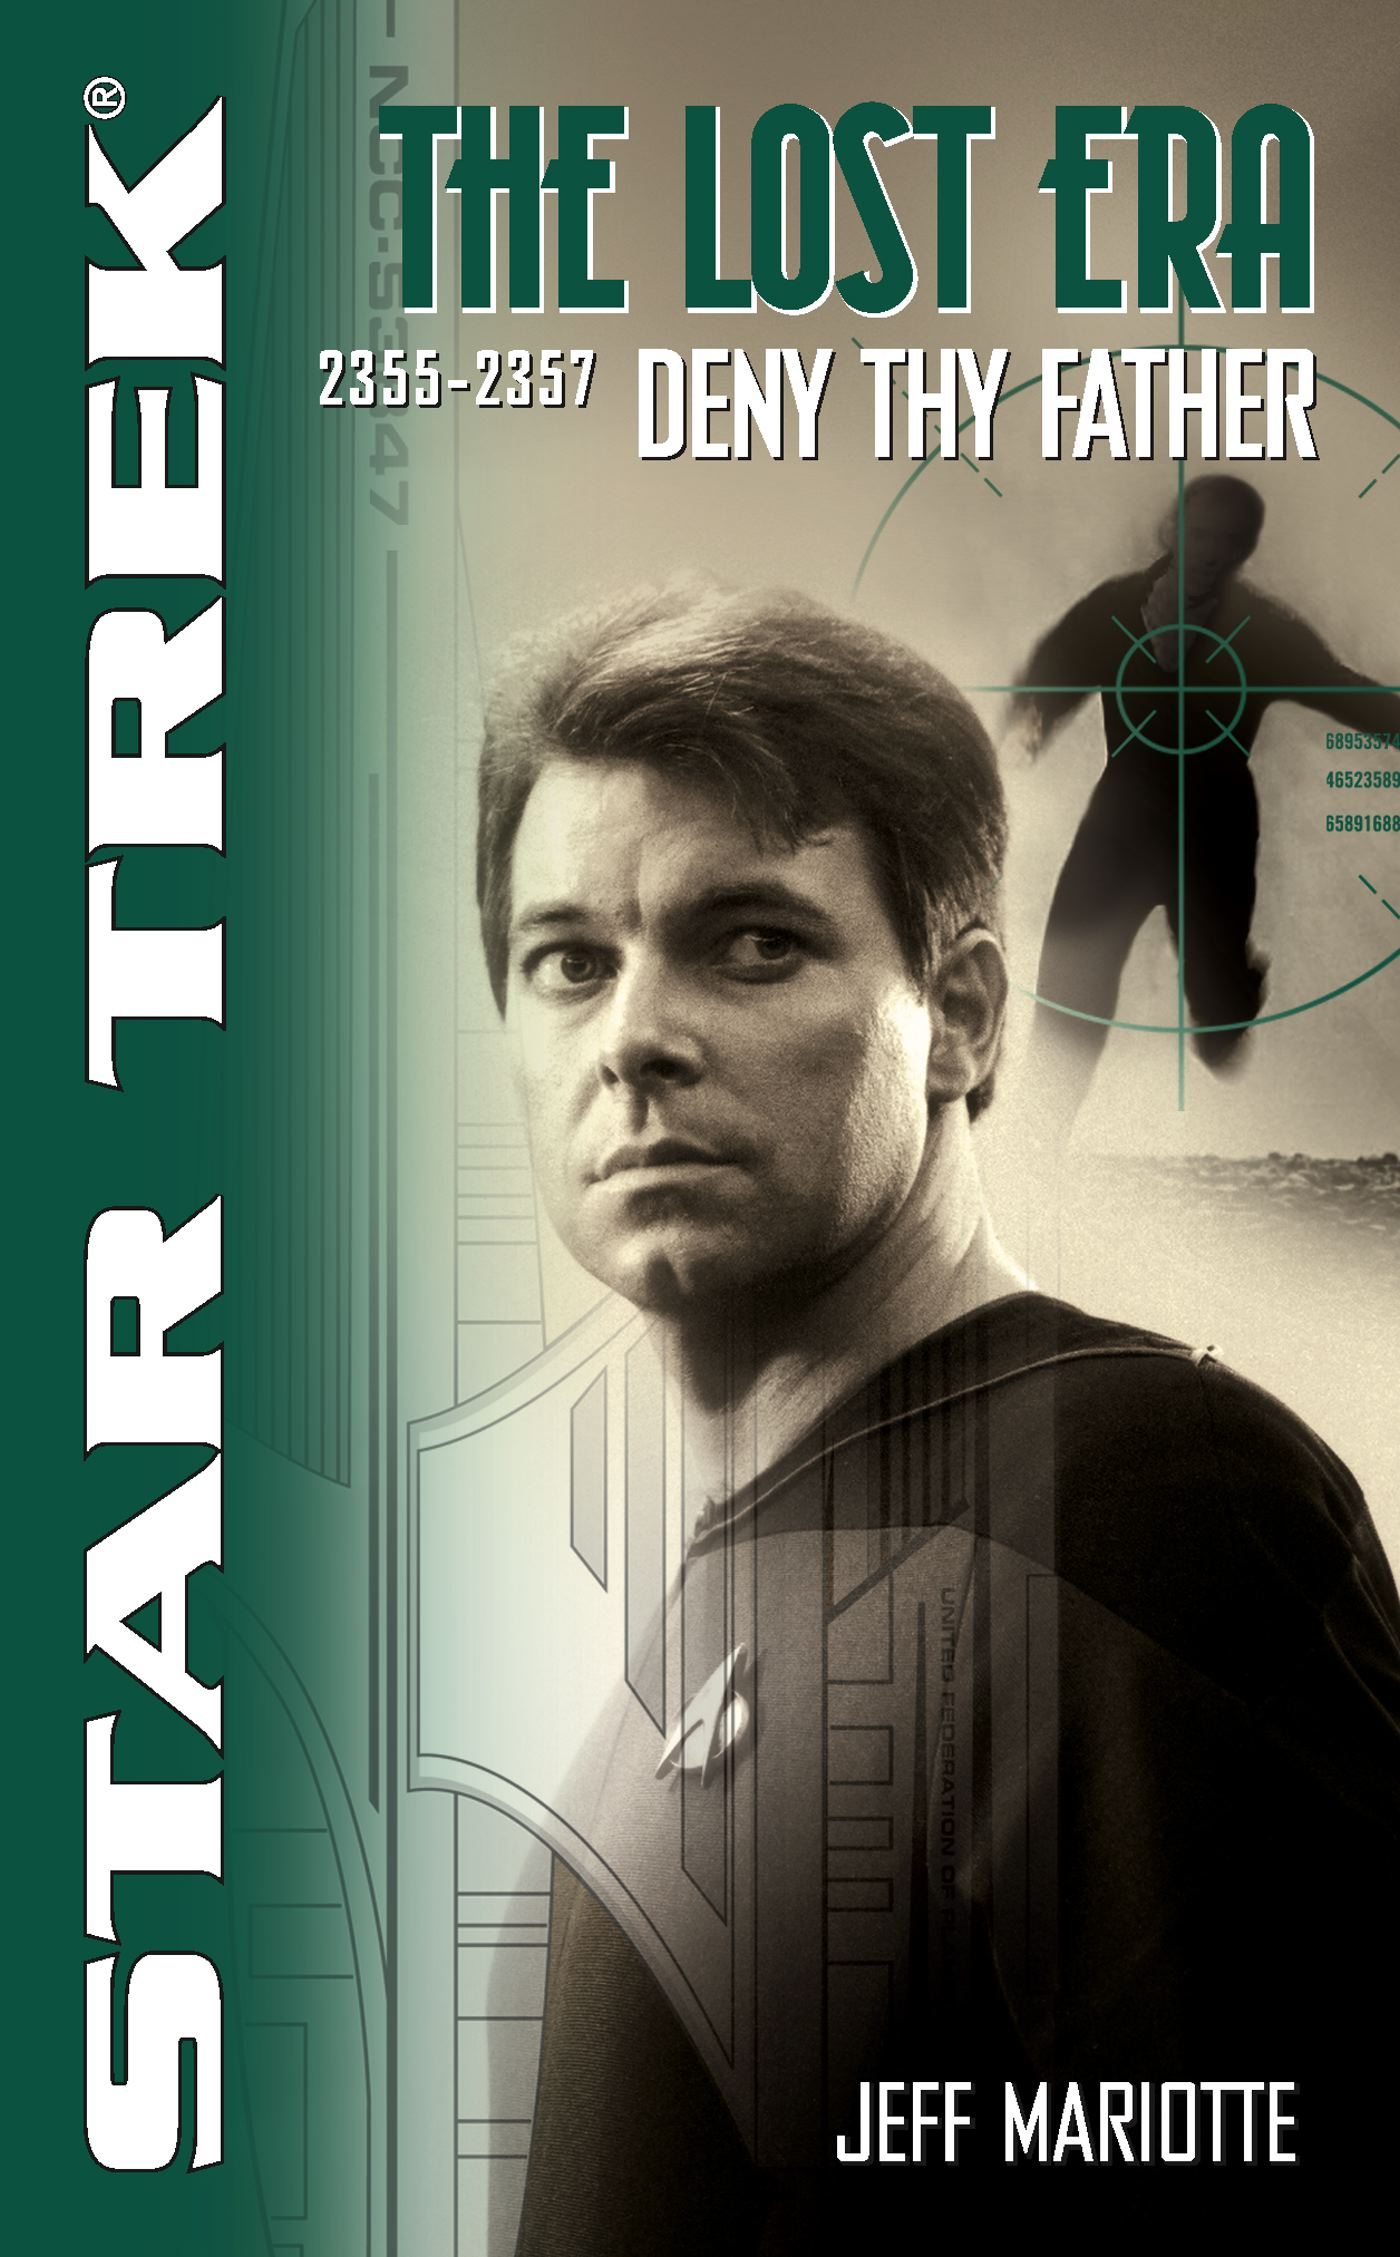 """""""Star Trek: The Lost Era: Deny Thy Father"""" Review by Treklit.com"""